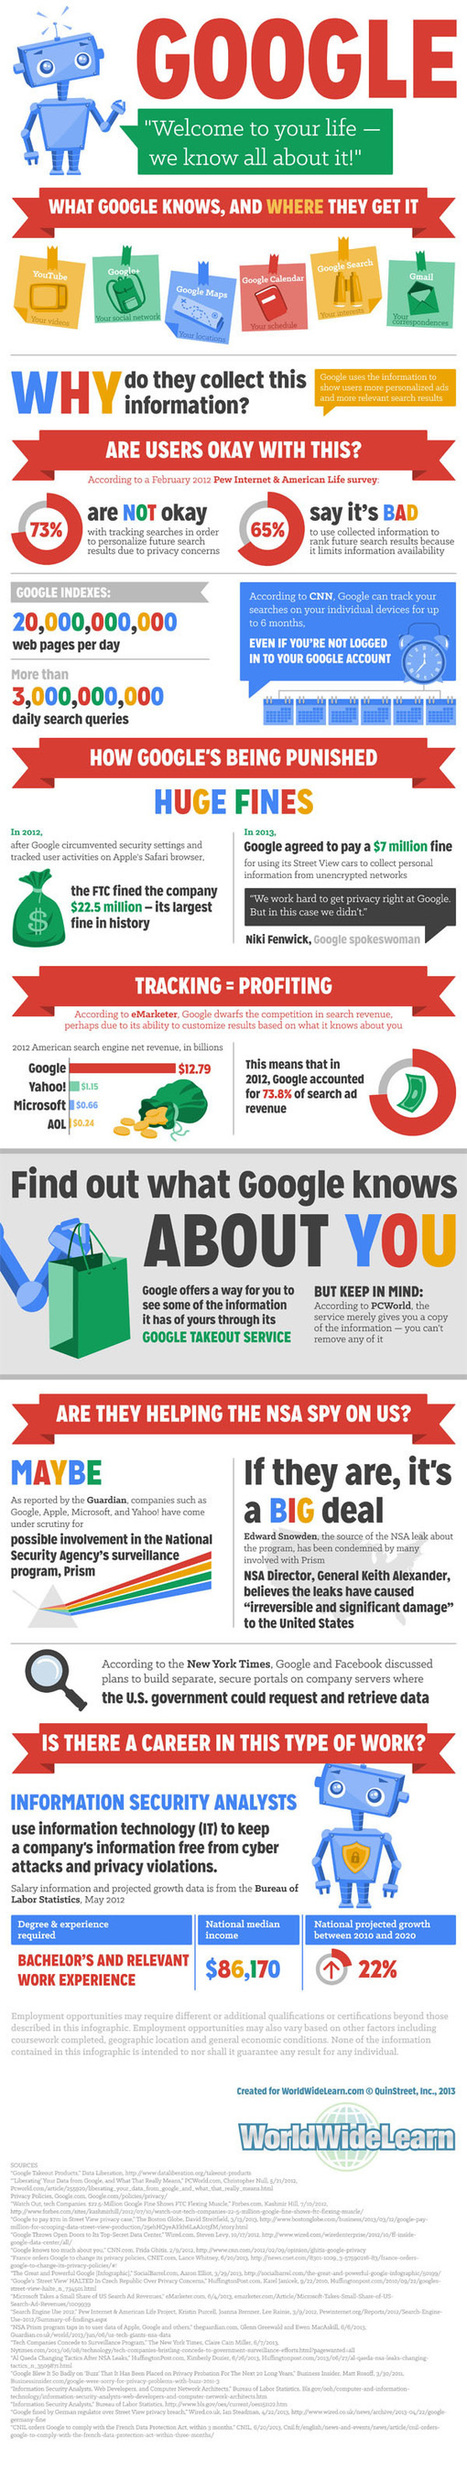 Google, You Don't Know Me! Information Security and Targeted Advertising #infographic   MarketingHits   Scoop.it